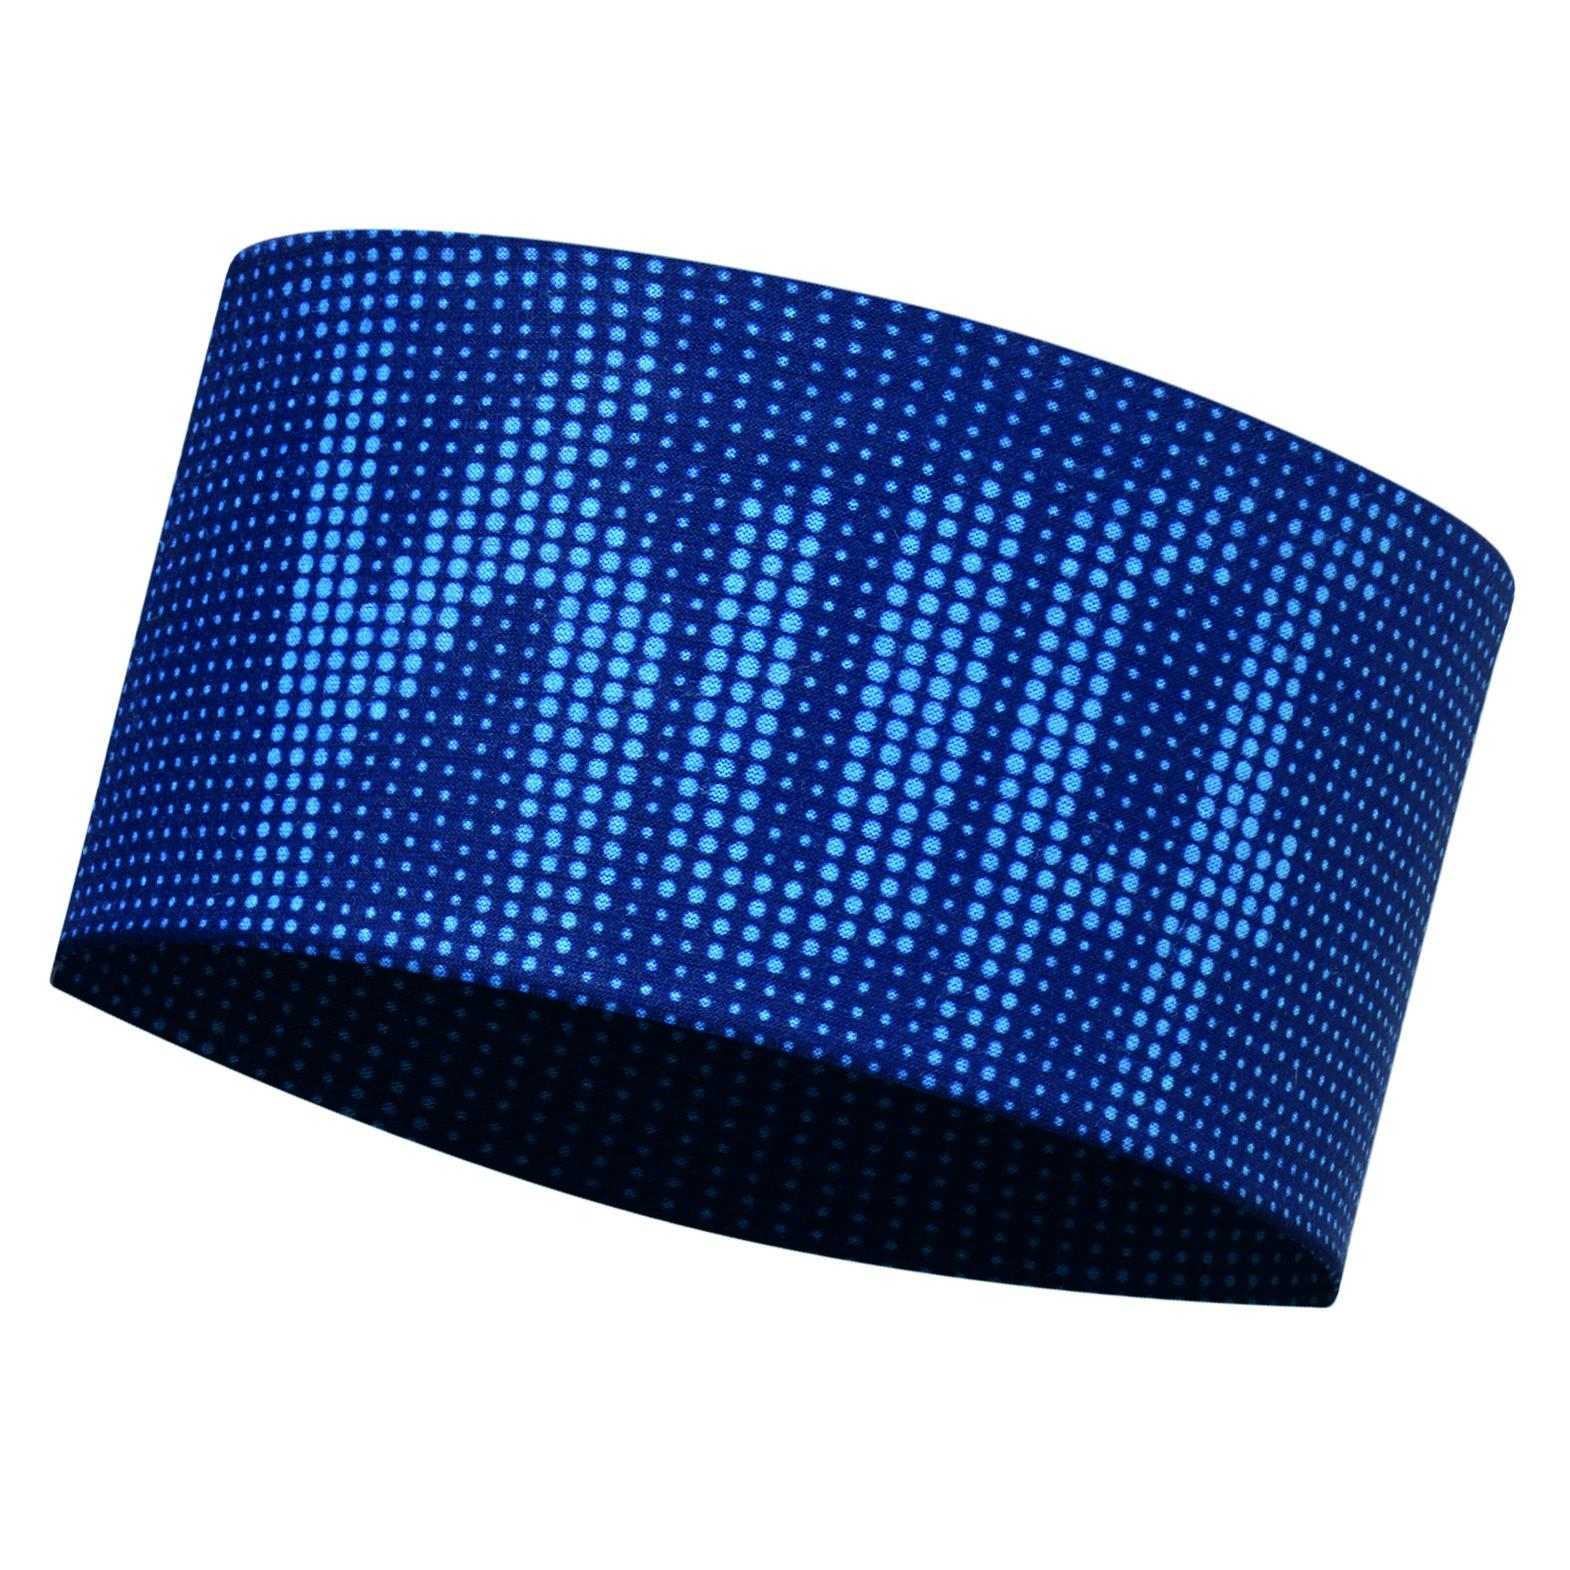 Повязка BUFF Headband DEEP LOGO DARK NAVY Банданы и шарфы Buff ® 1312845  - купить со скидкой